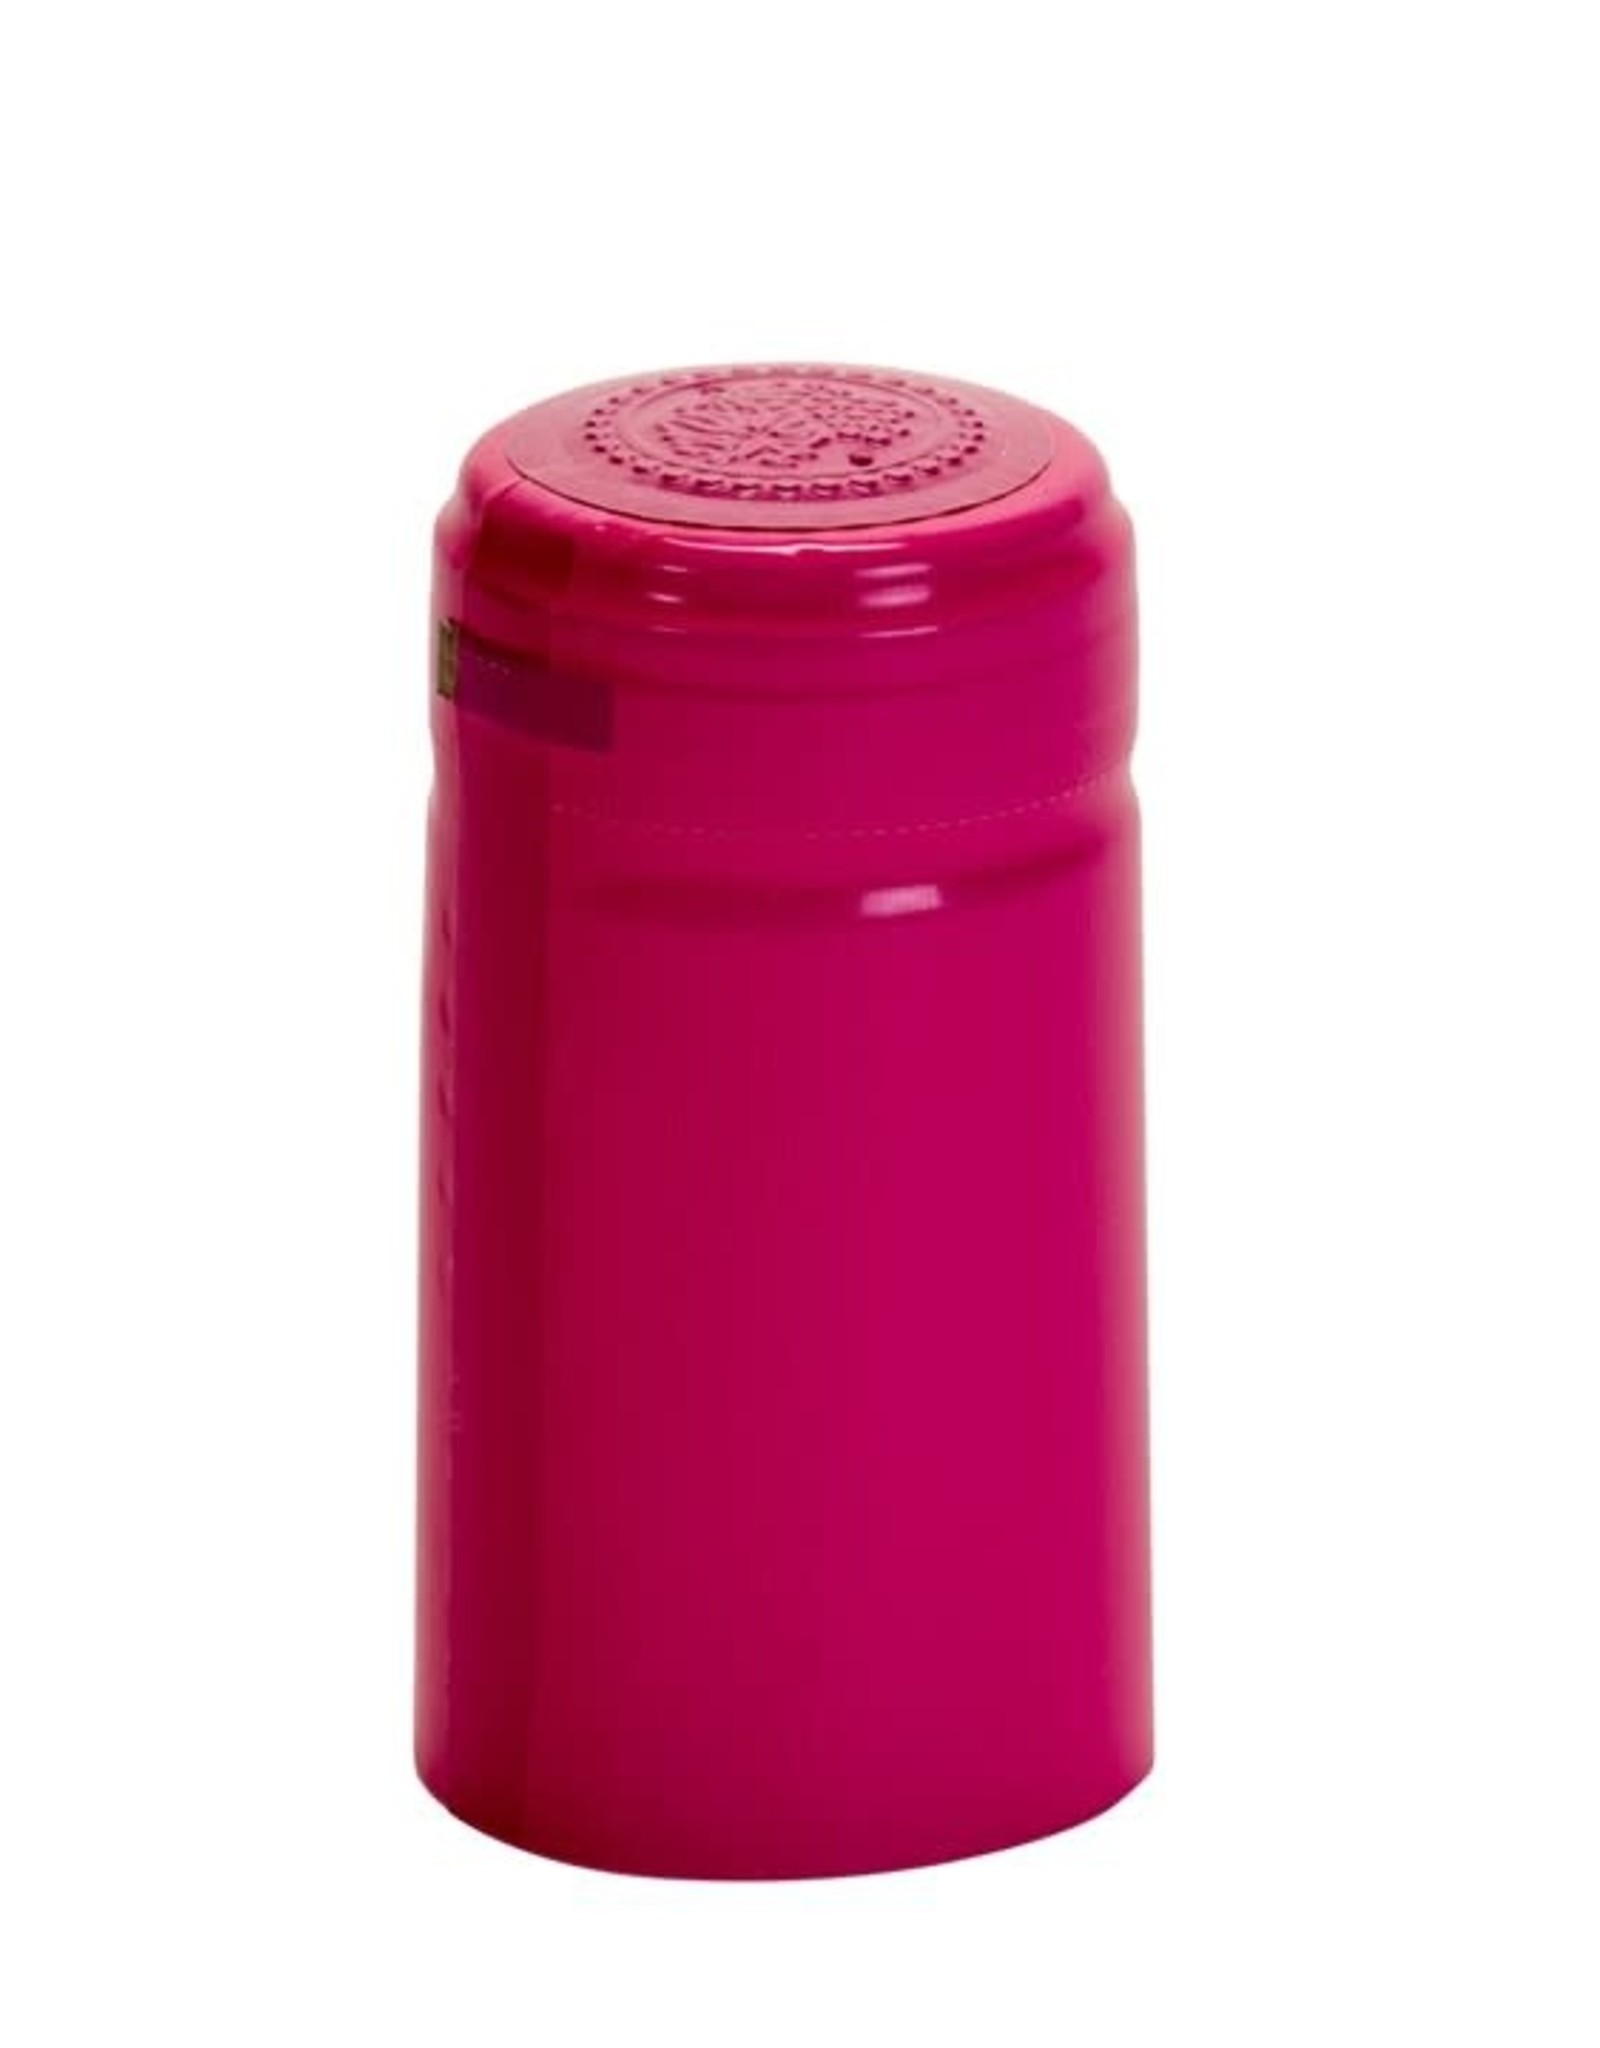 PINK GLOSS PVC SHRINK CAPSULES 30 COUNT